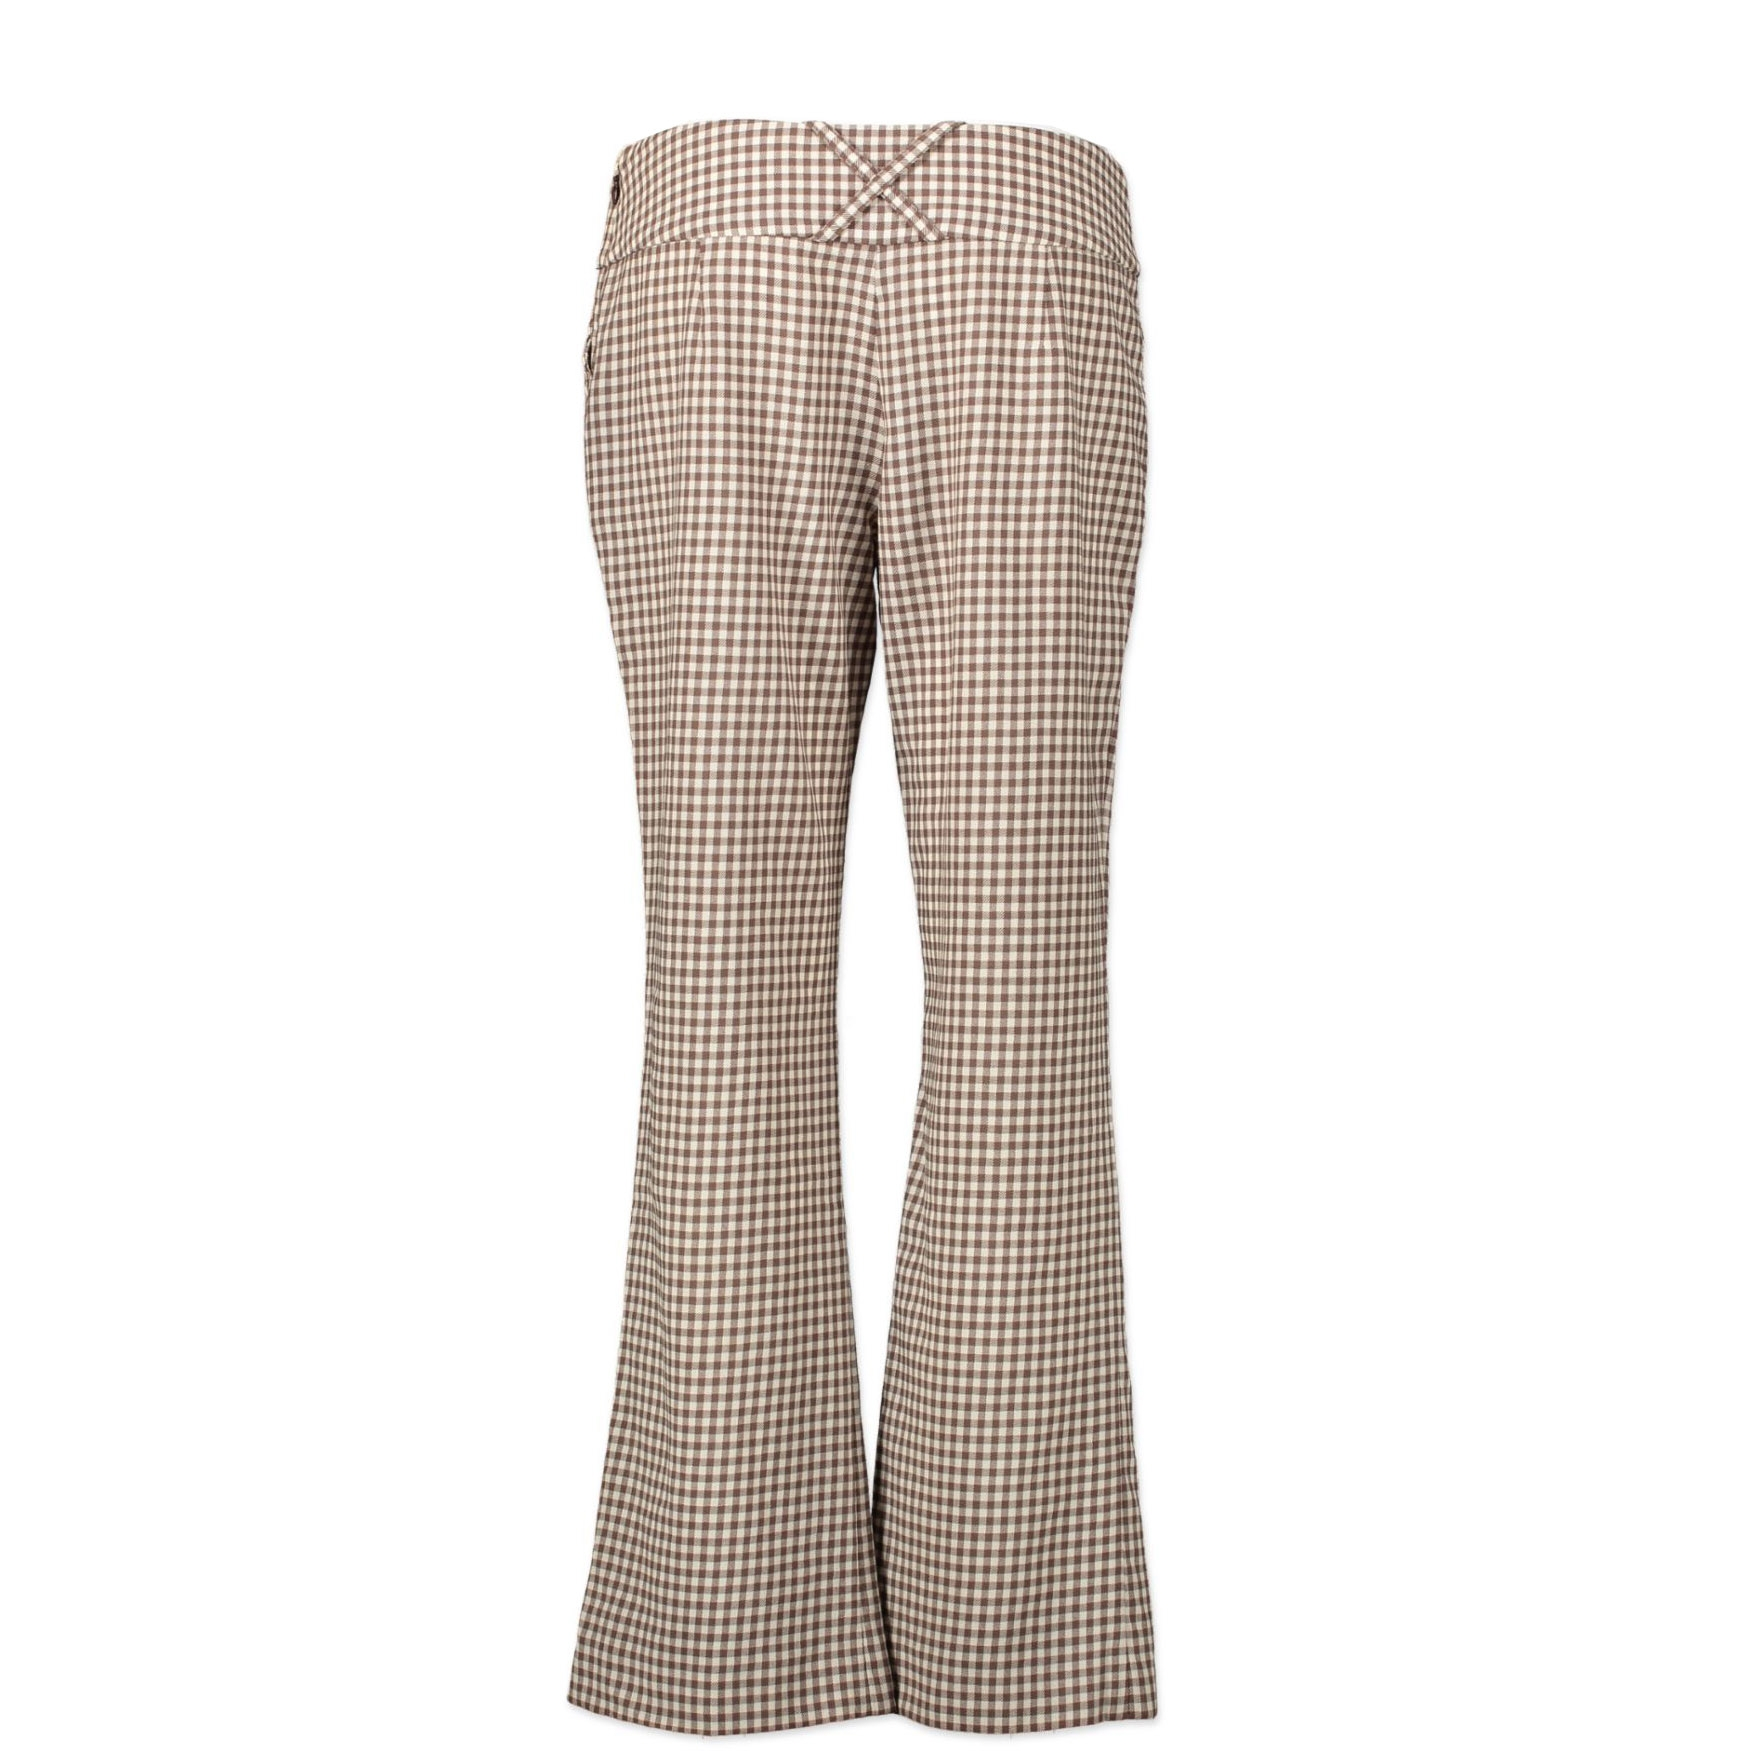 Valentino Gingham Pants - Size 42